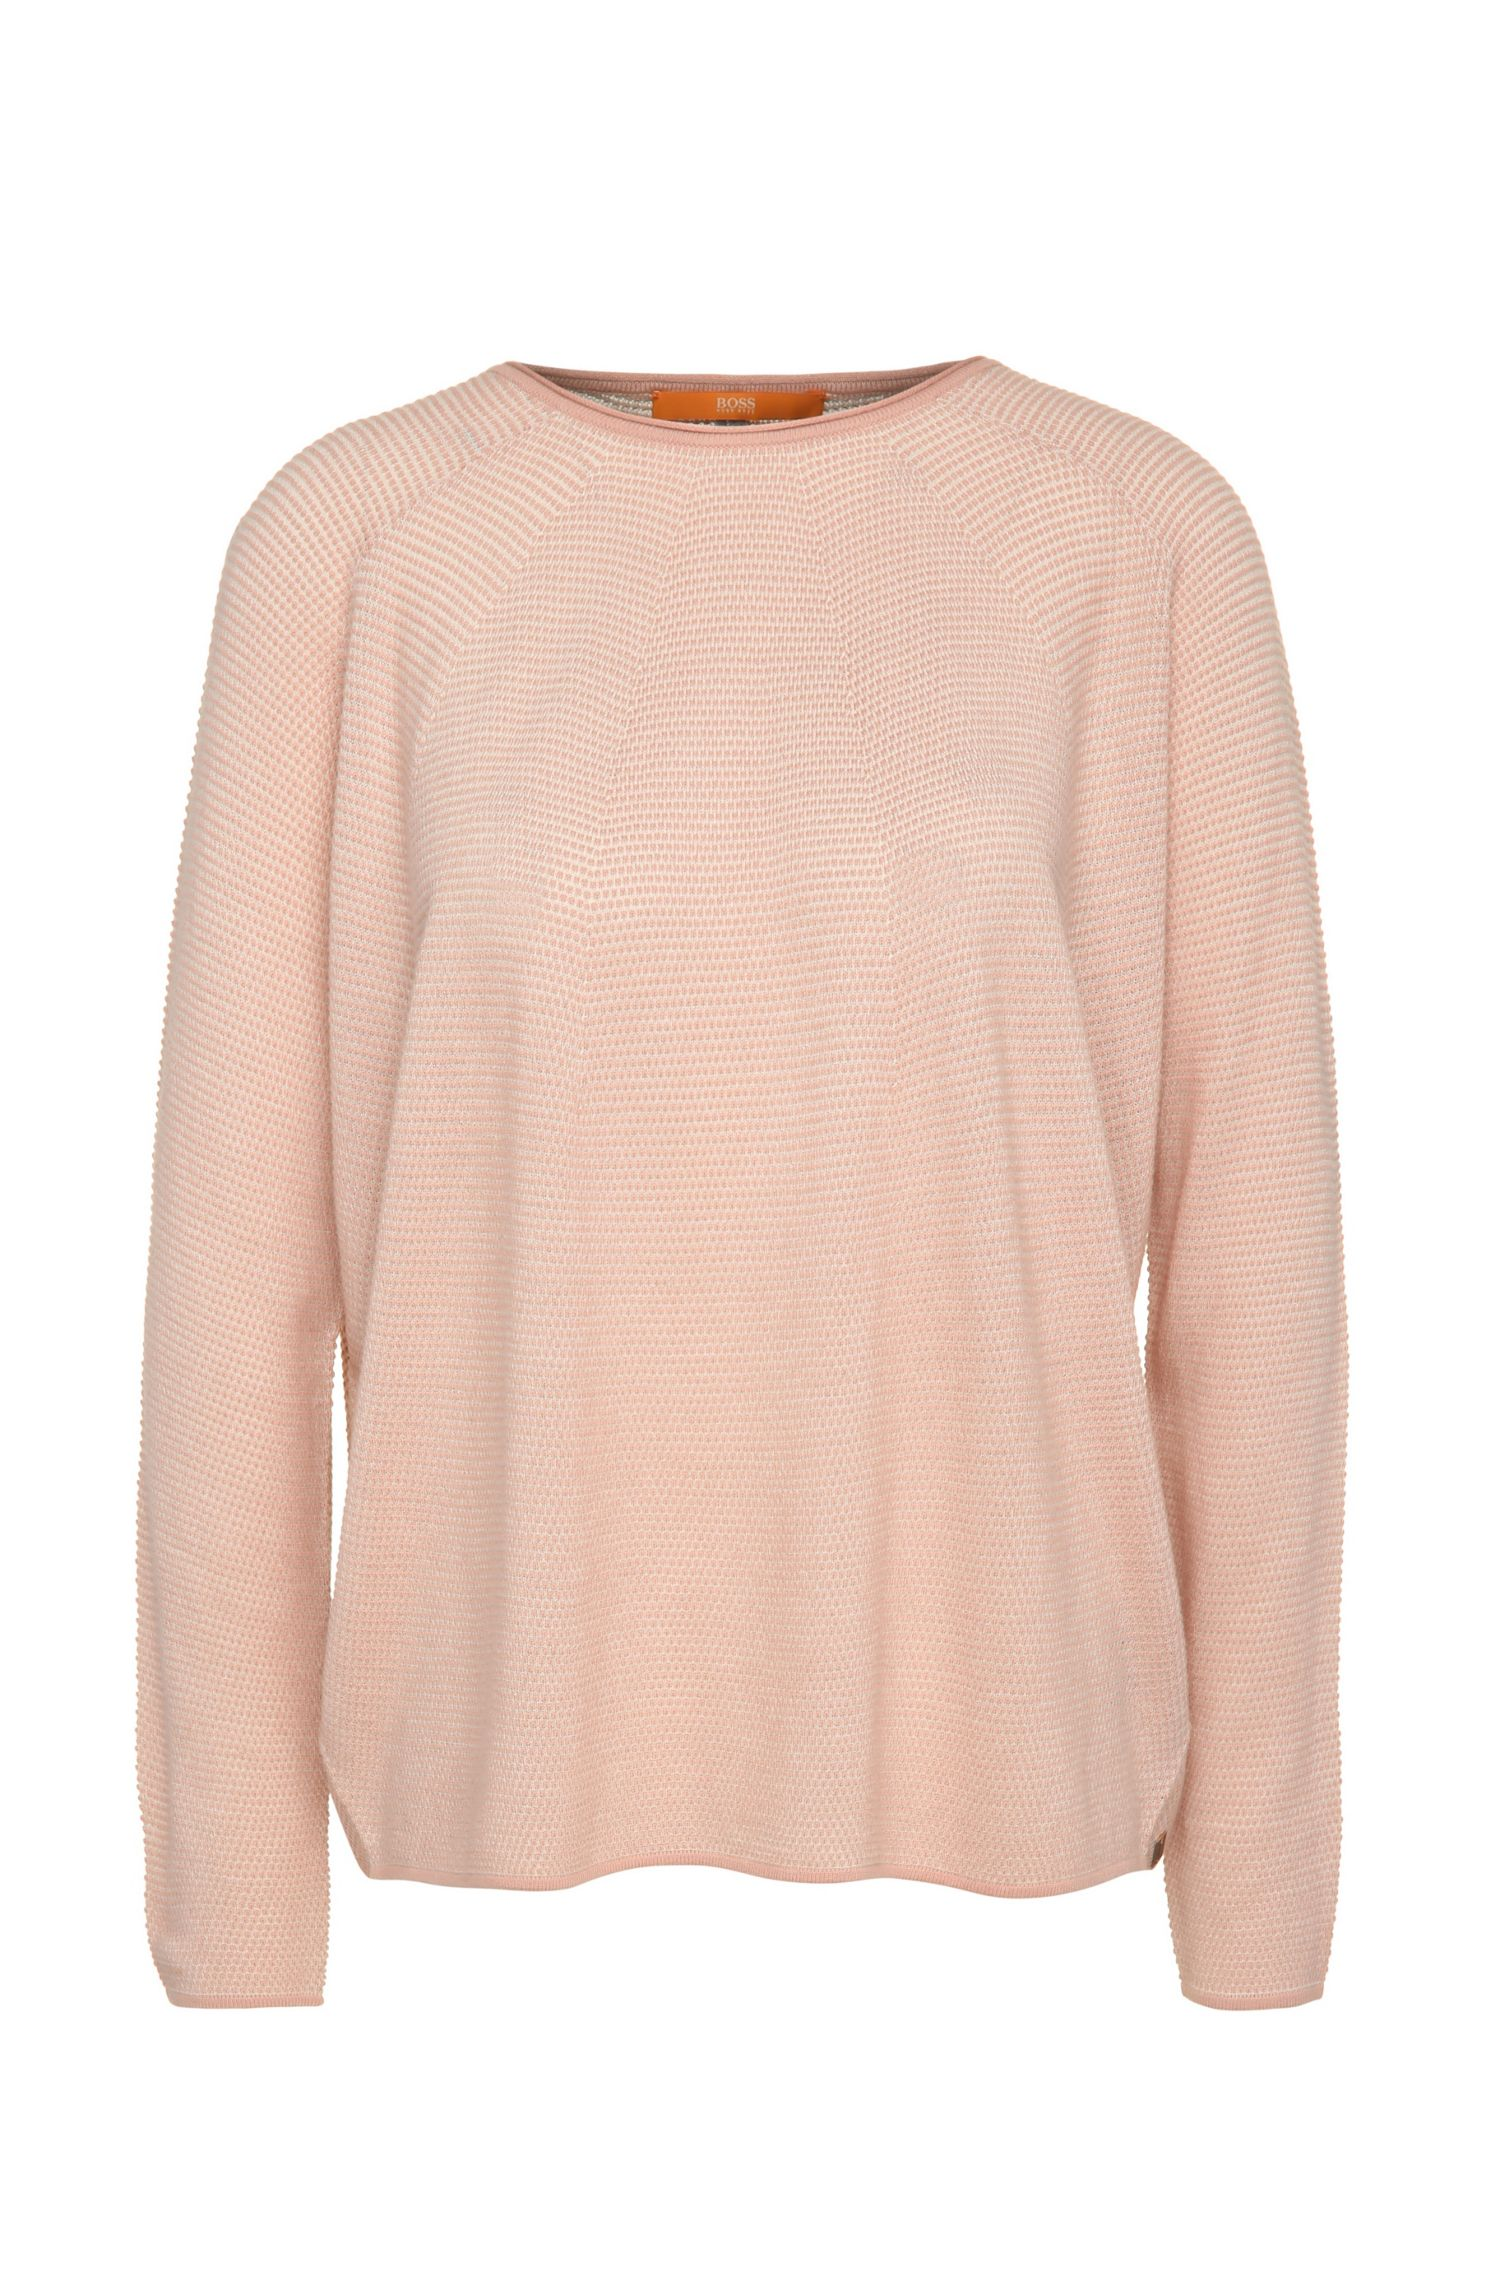 Relaxed-fit sweater in viscose blend with cotton, new wool and silk: 'Ilsetta'